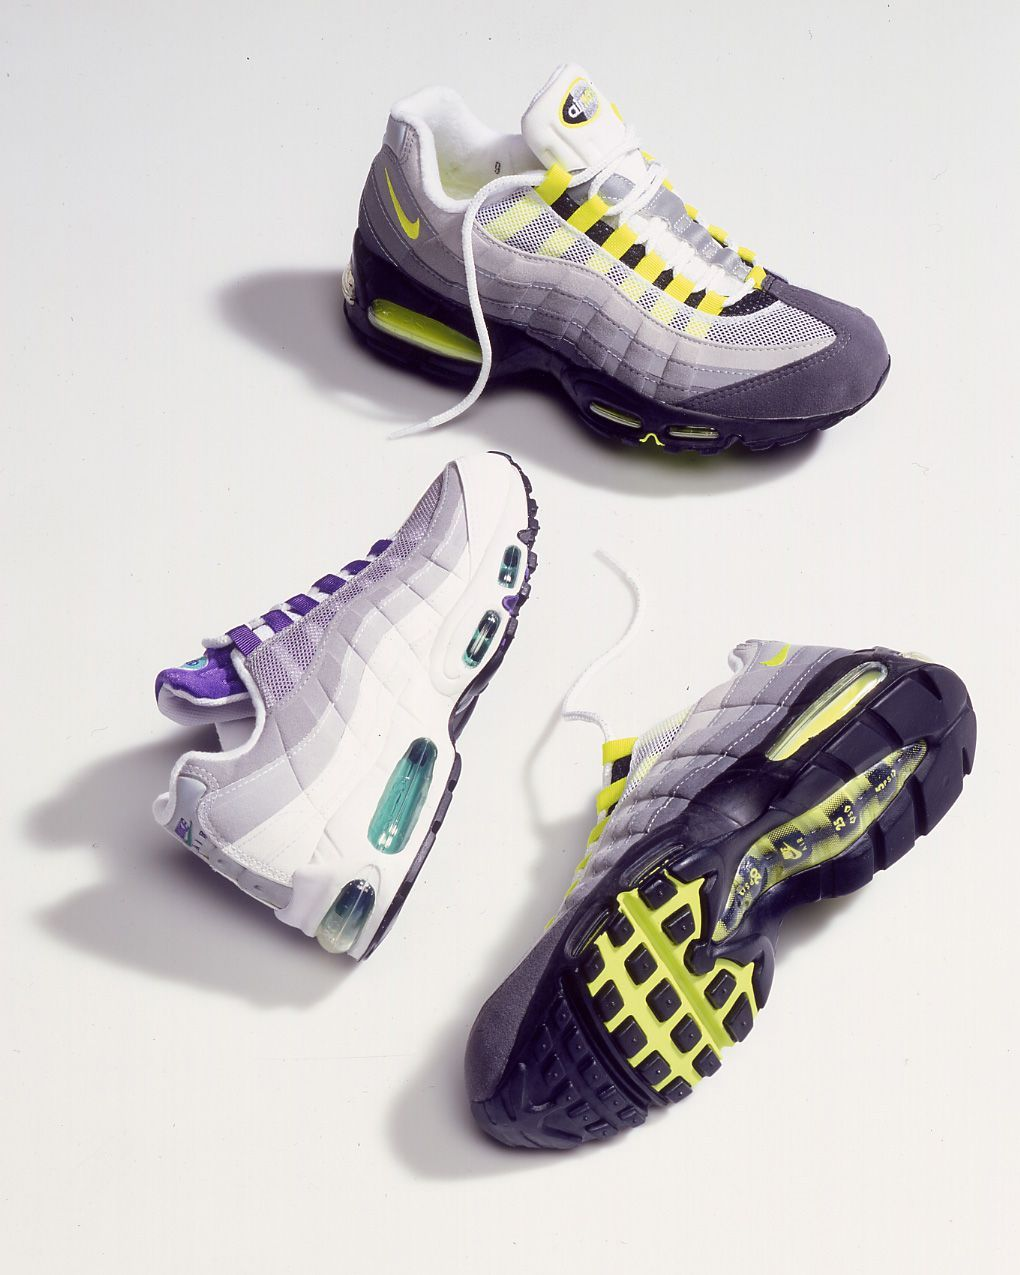 reputable site 645b1 a5928 Nike Air Max 95  The Origin Story (Including Original Sketches) - EU Kicks   Sneaker Magazine